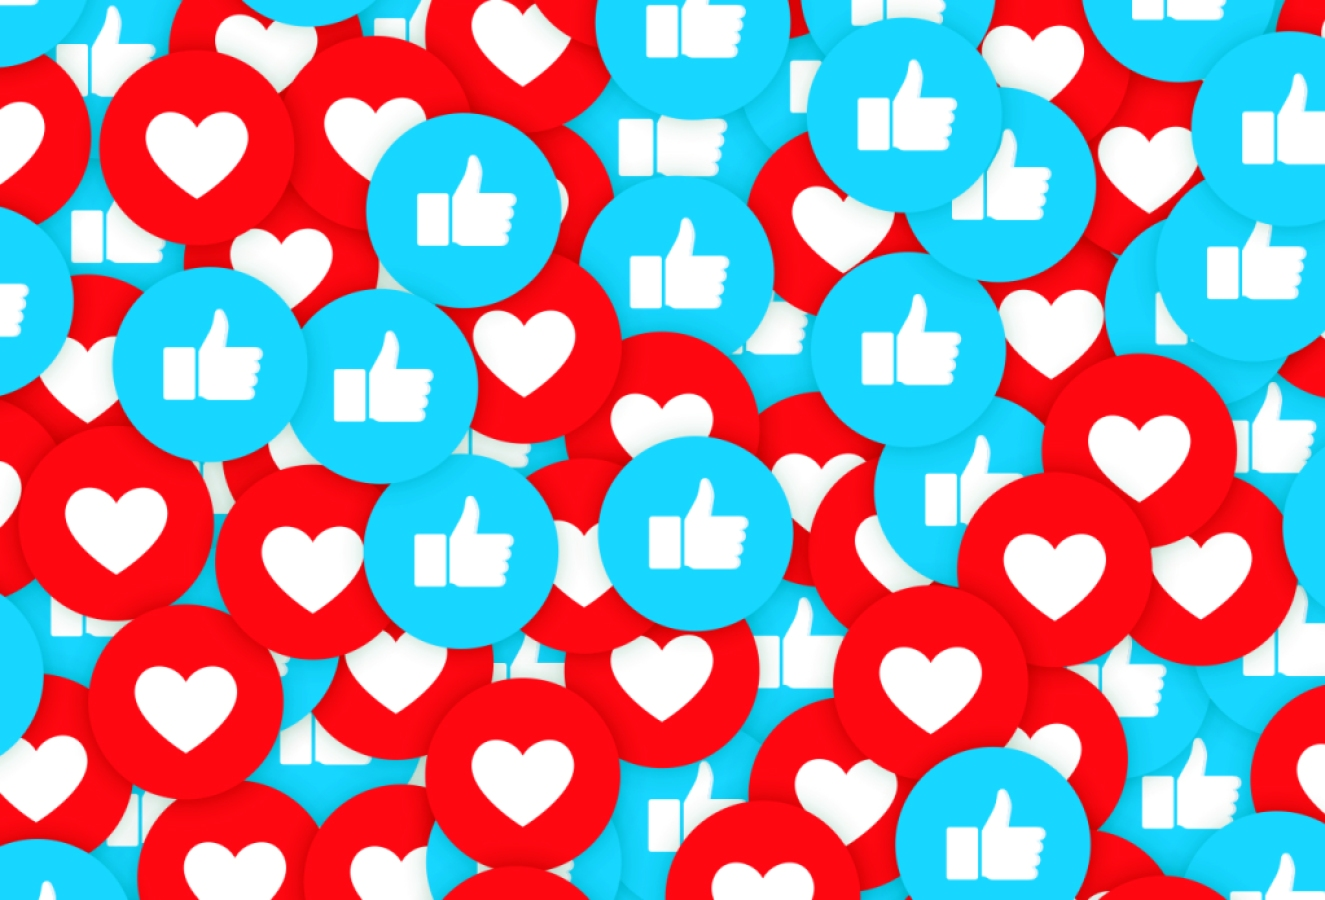 repeating pattern of blue thumbs up circles and red heart circles